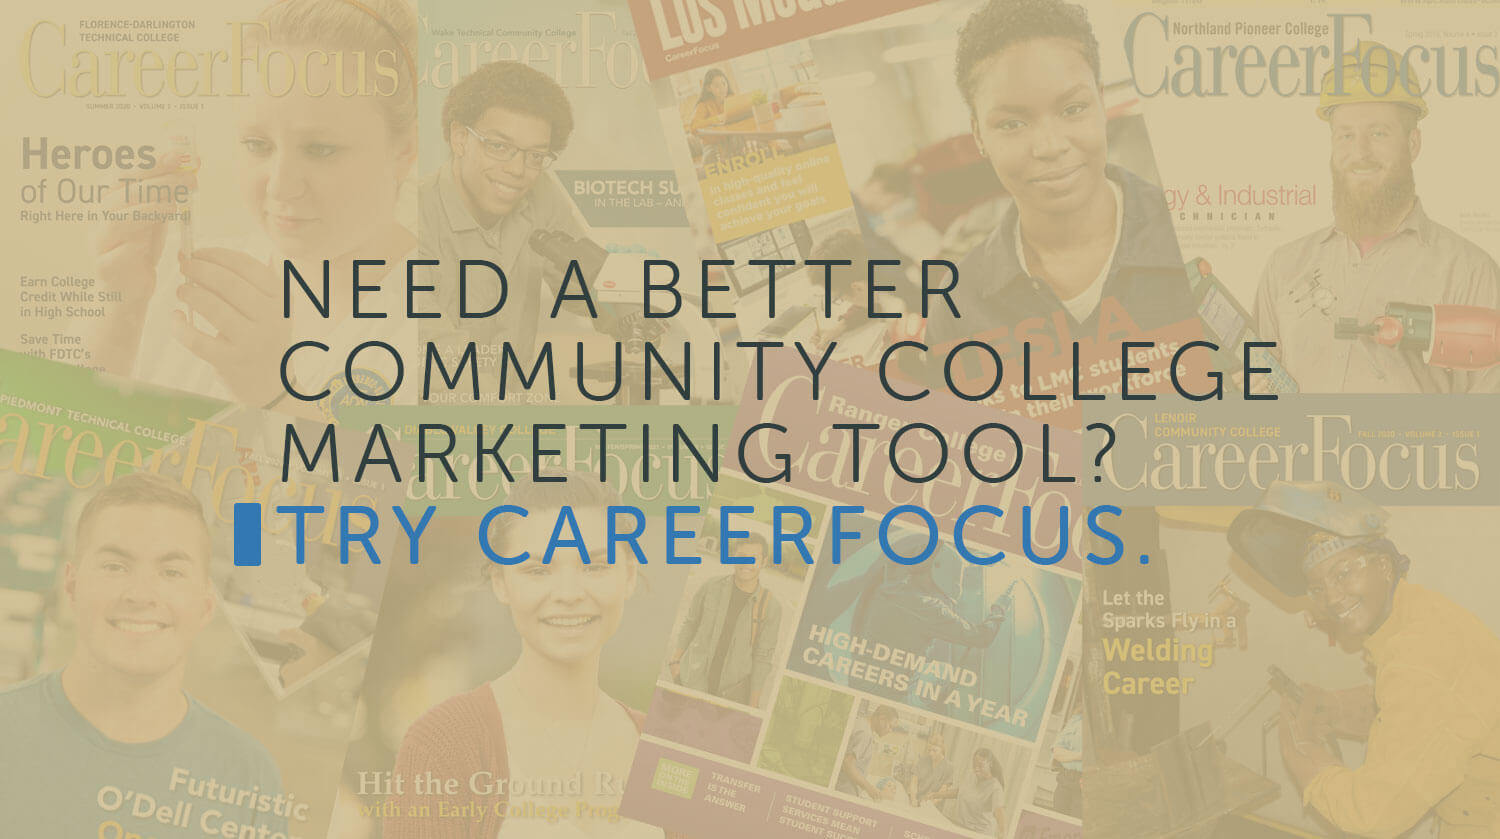 Need a Better Community College Marketing Tool? Try CareerFocus.